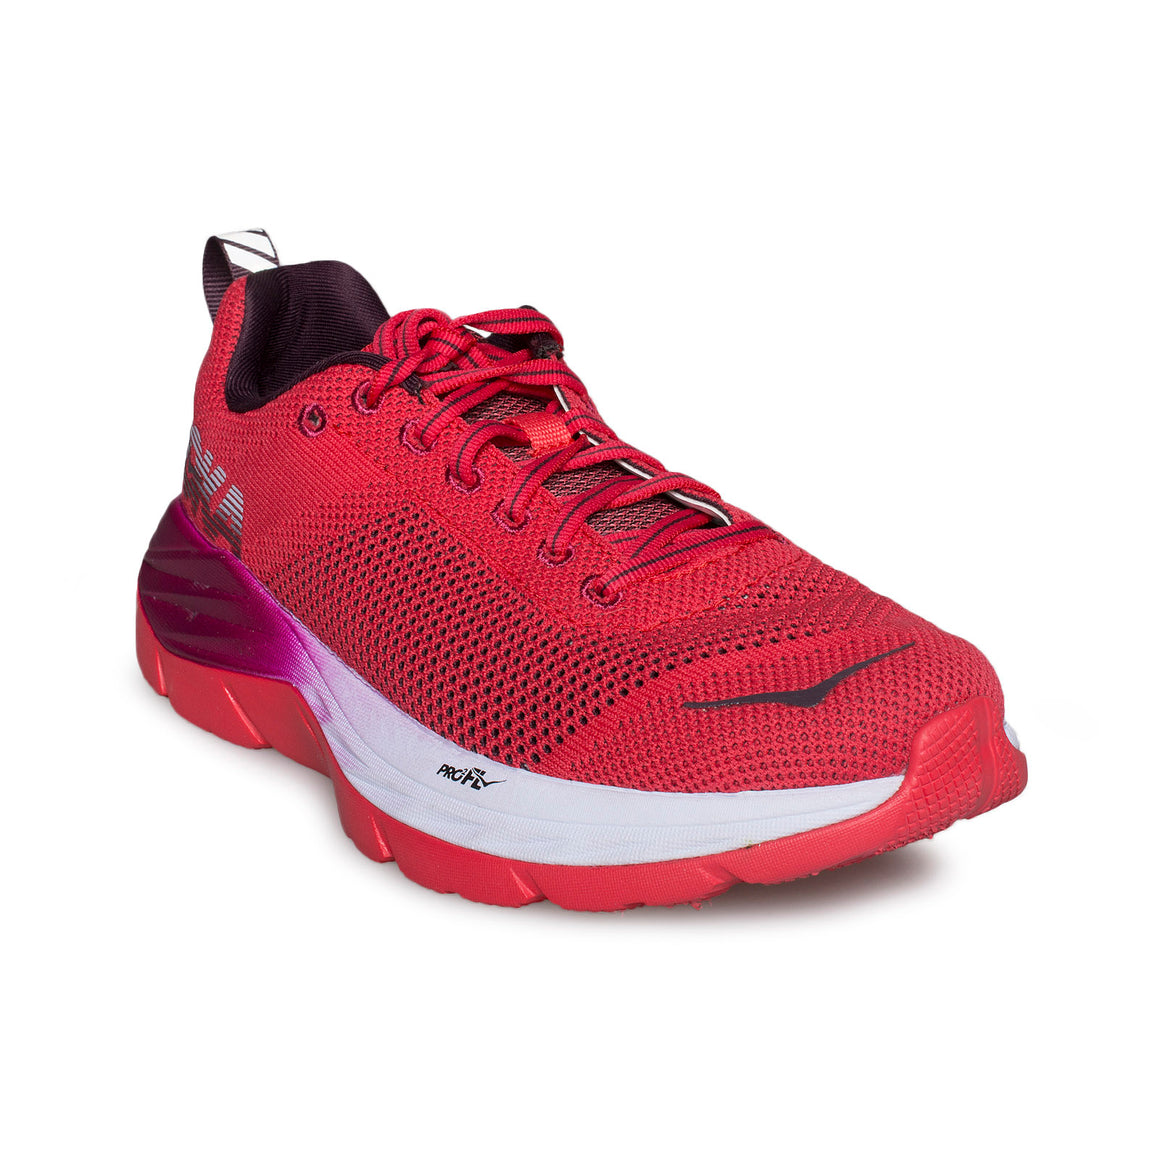 Hoka One One Mach Hibiscus / Cherries Jubilee Running Shoes - Women's